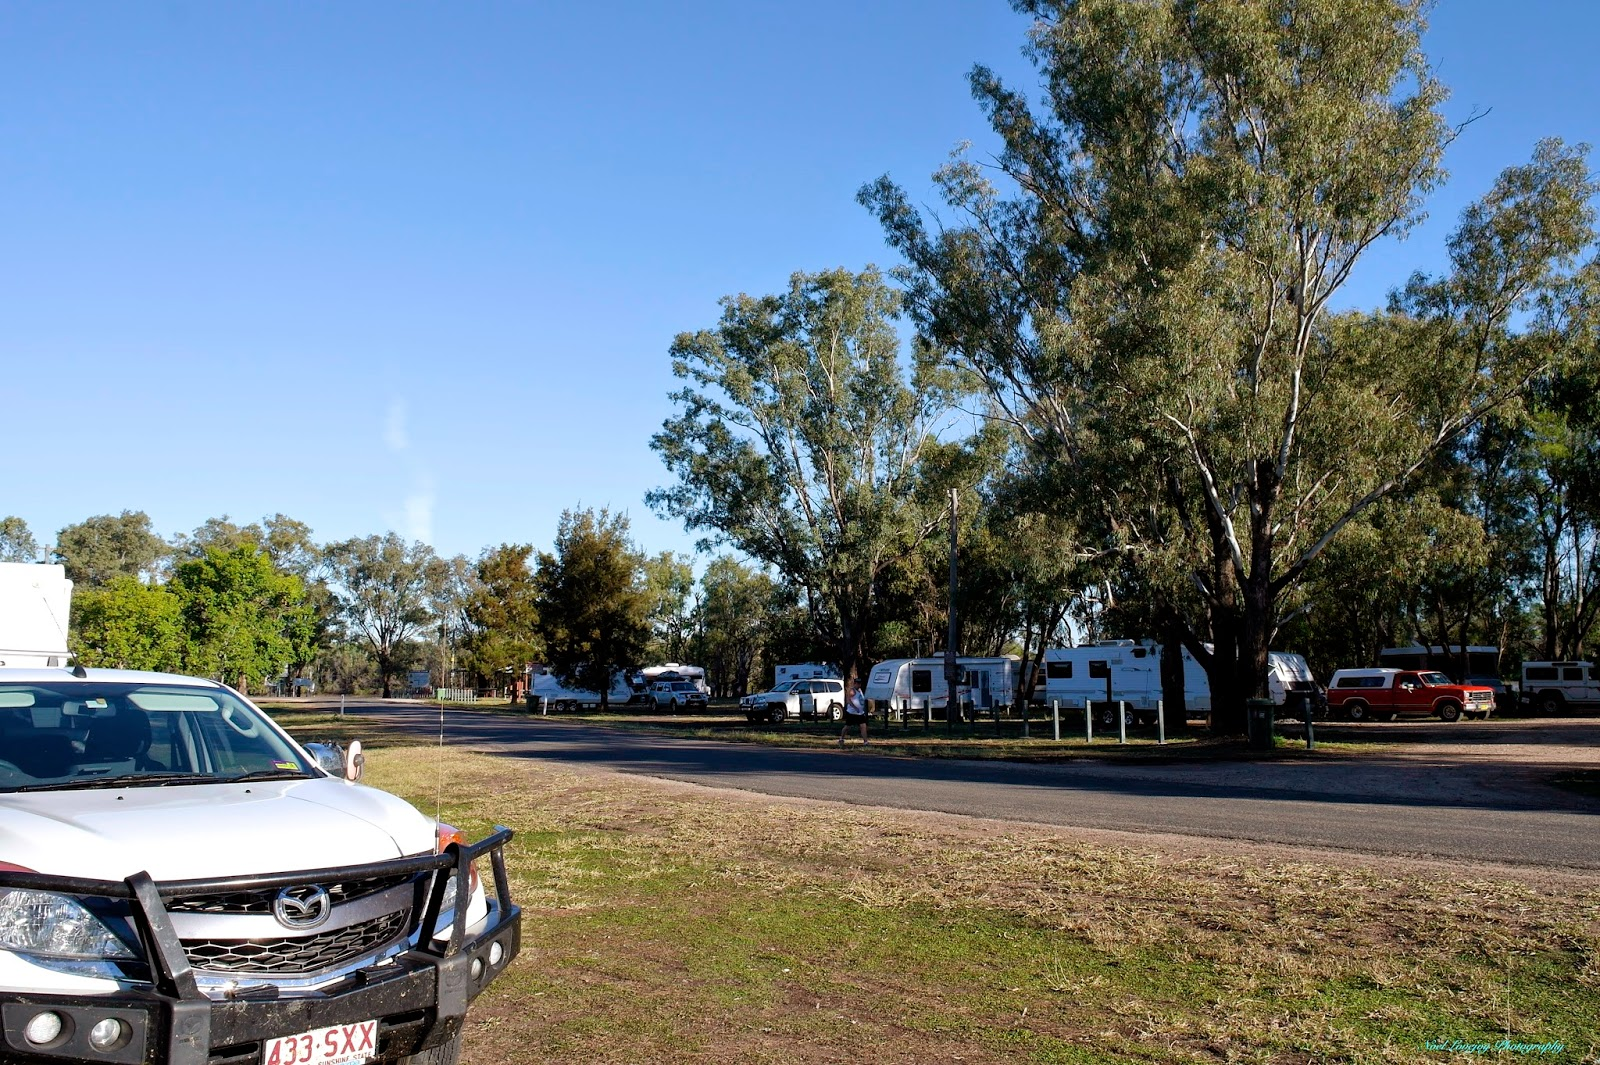 Chinchilla Australia  City new picture : Our camp at Chinchilla Weir. The caravans camped under the trees are ...